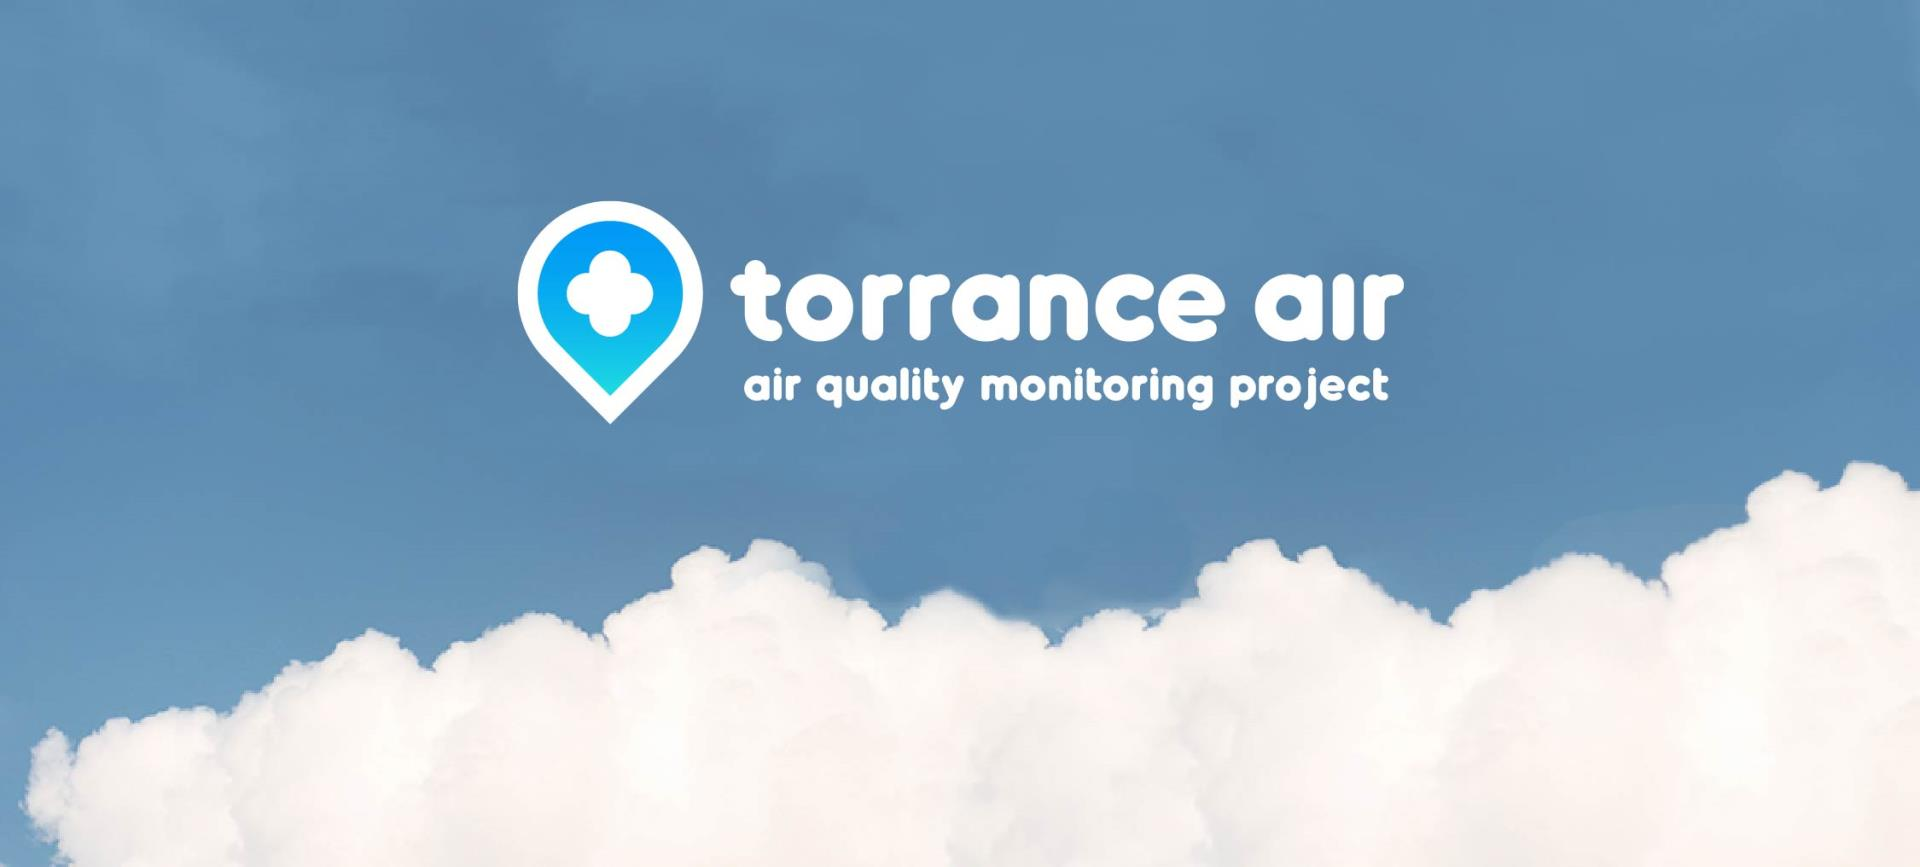 Torrance Air, Air Quality Monitoring Project with clouds